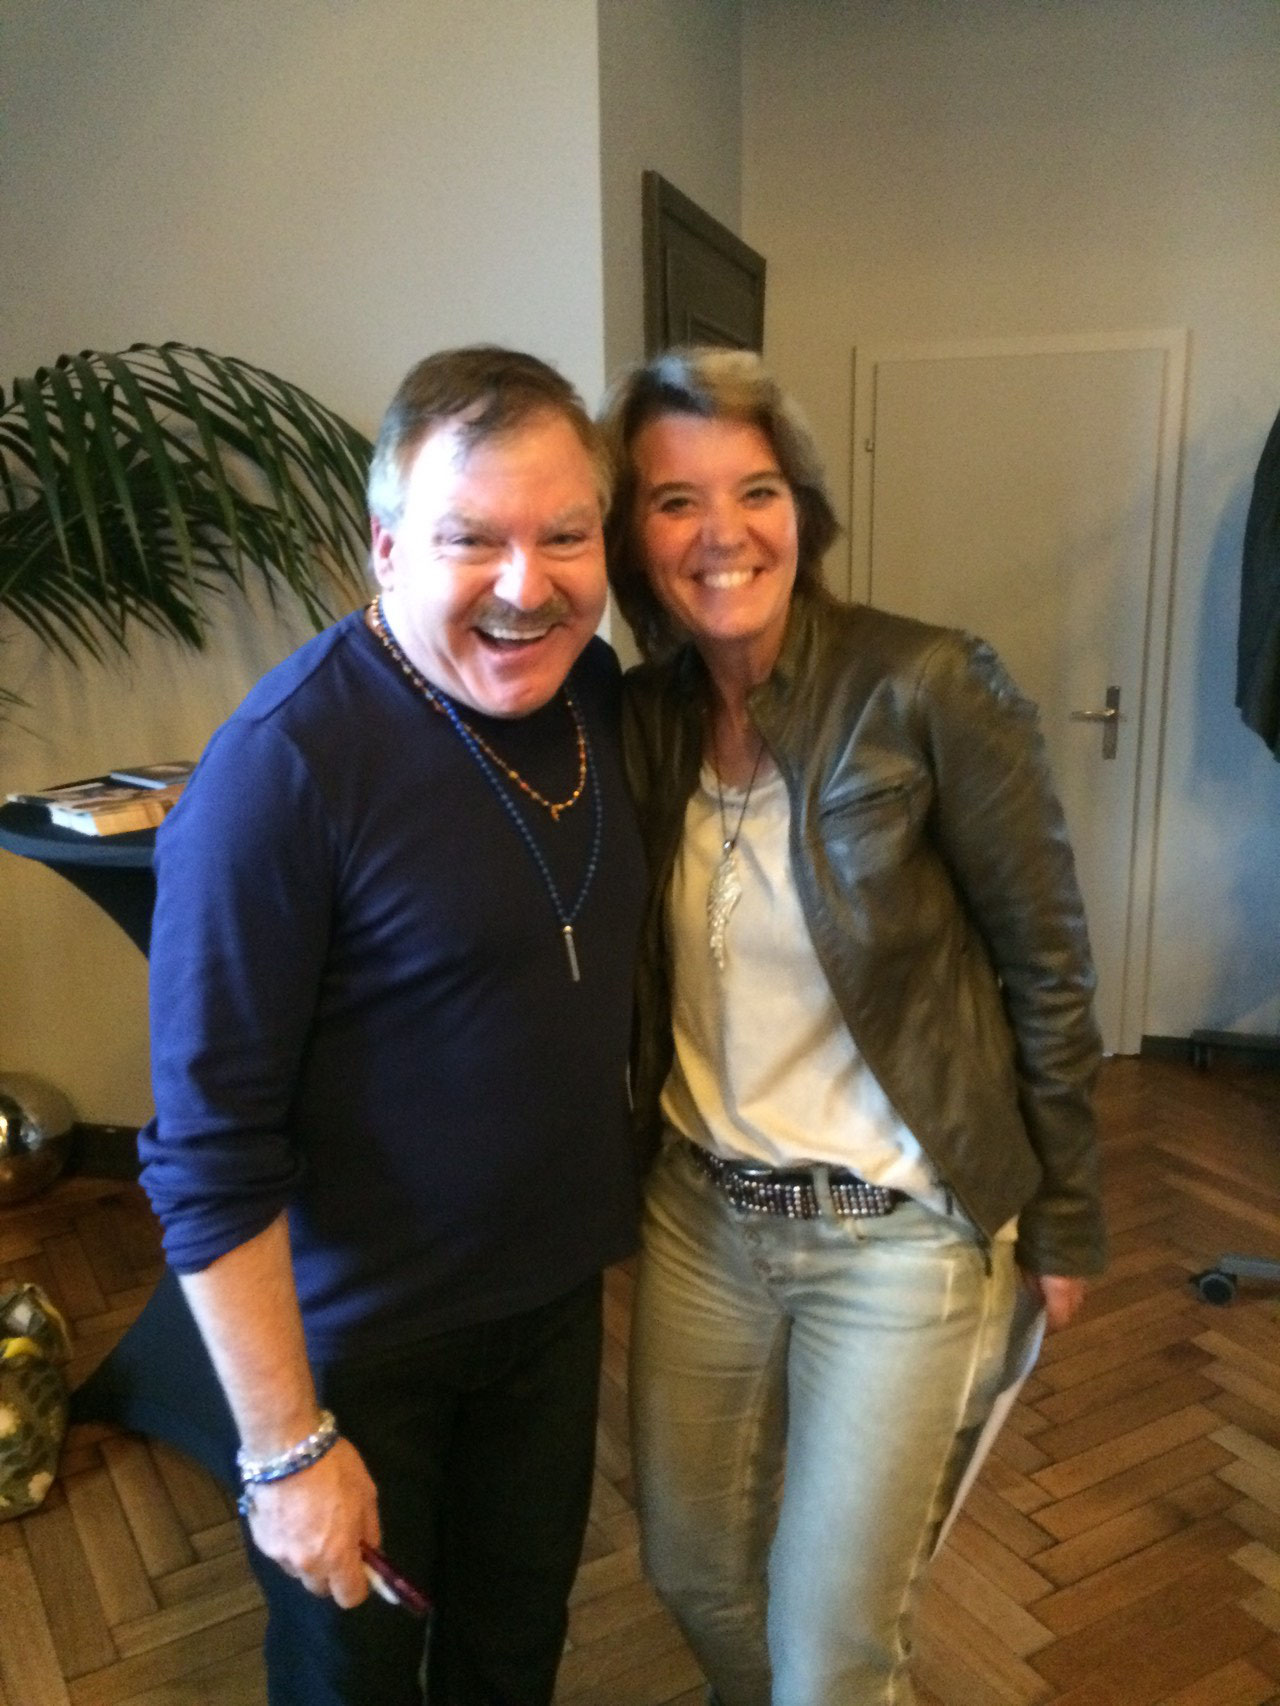 James van Praagh + Claudia